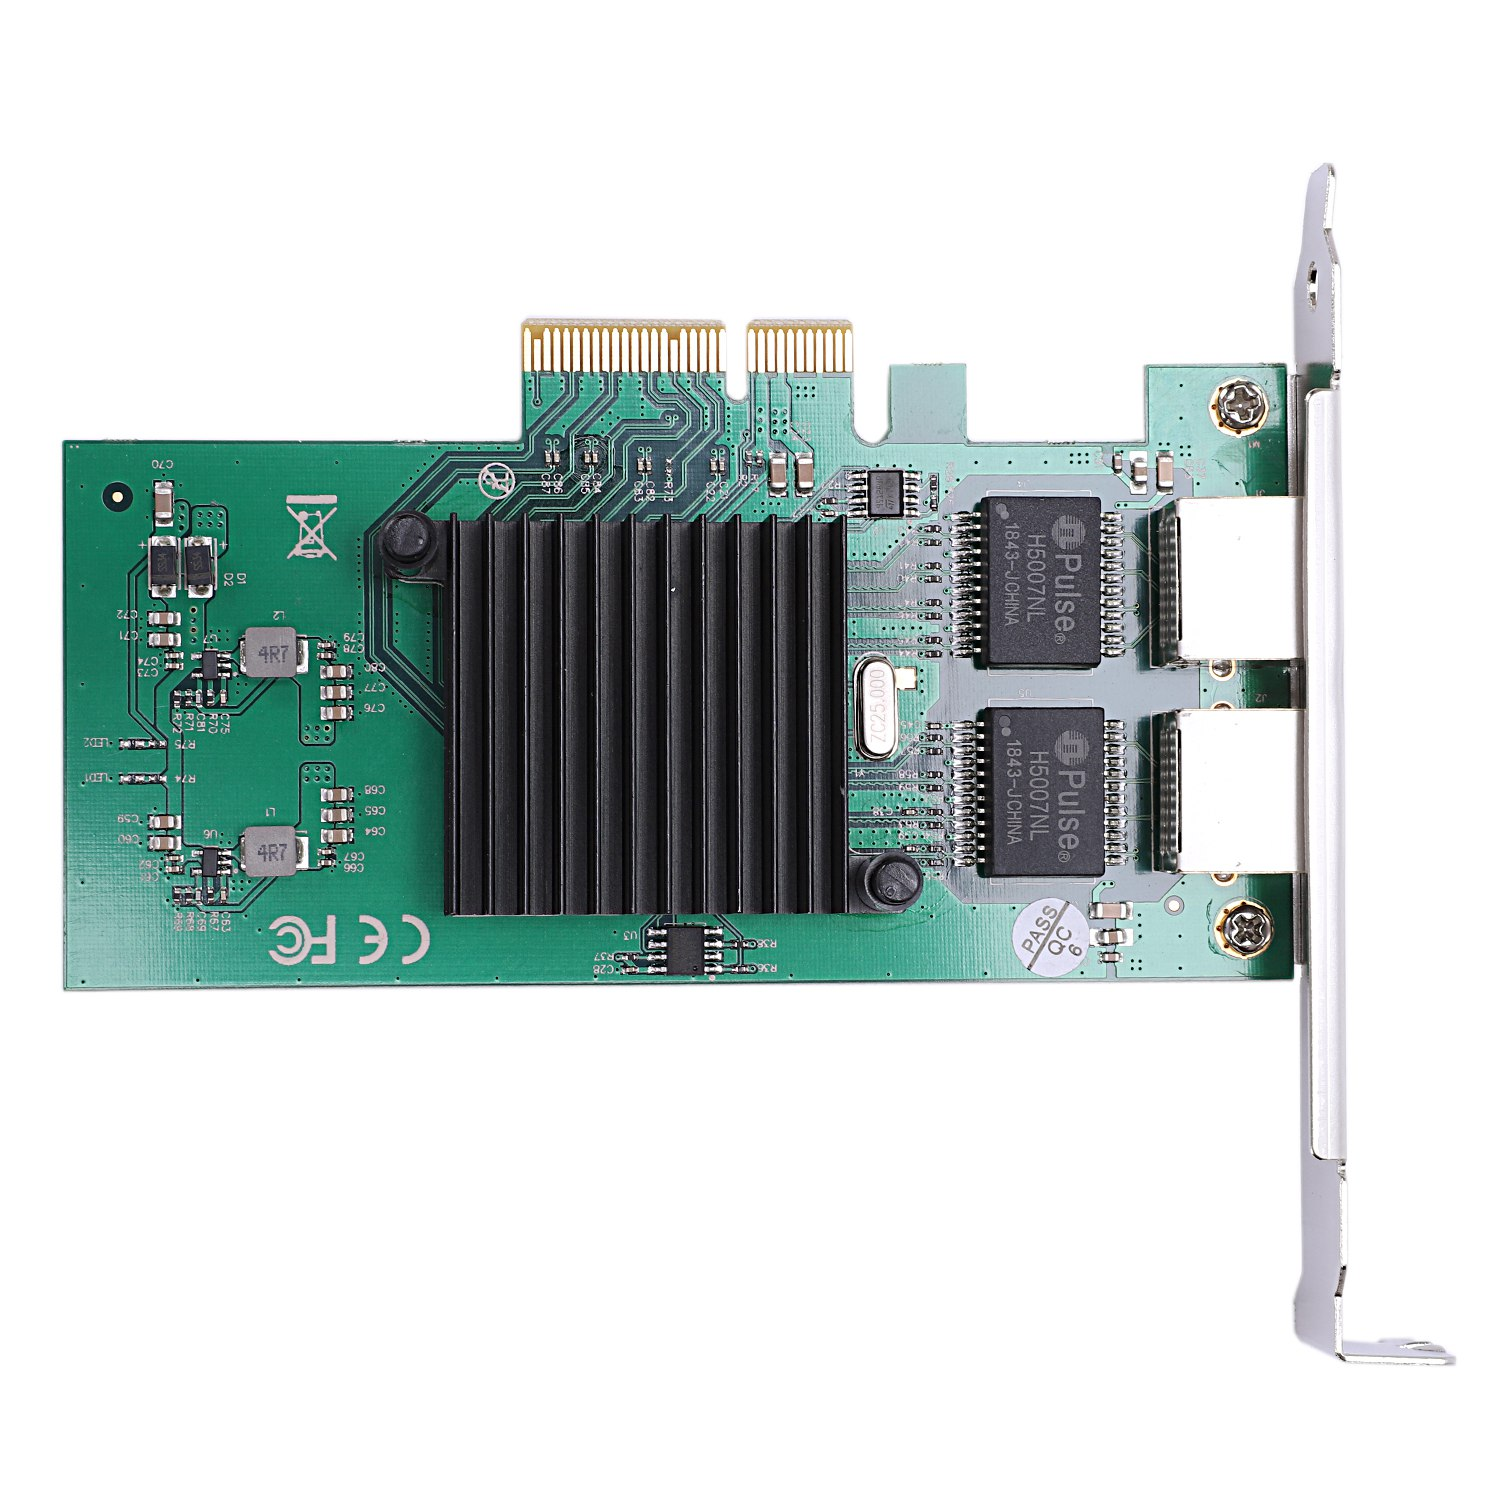 Network Card For For Intel82575 Server Chipset Gigabit Pci Express Network Card 1000M Pci E Double Rj45 Port Nic Adapter